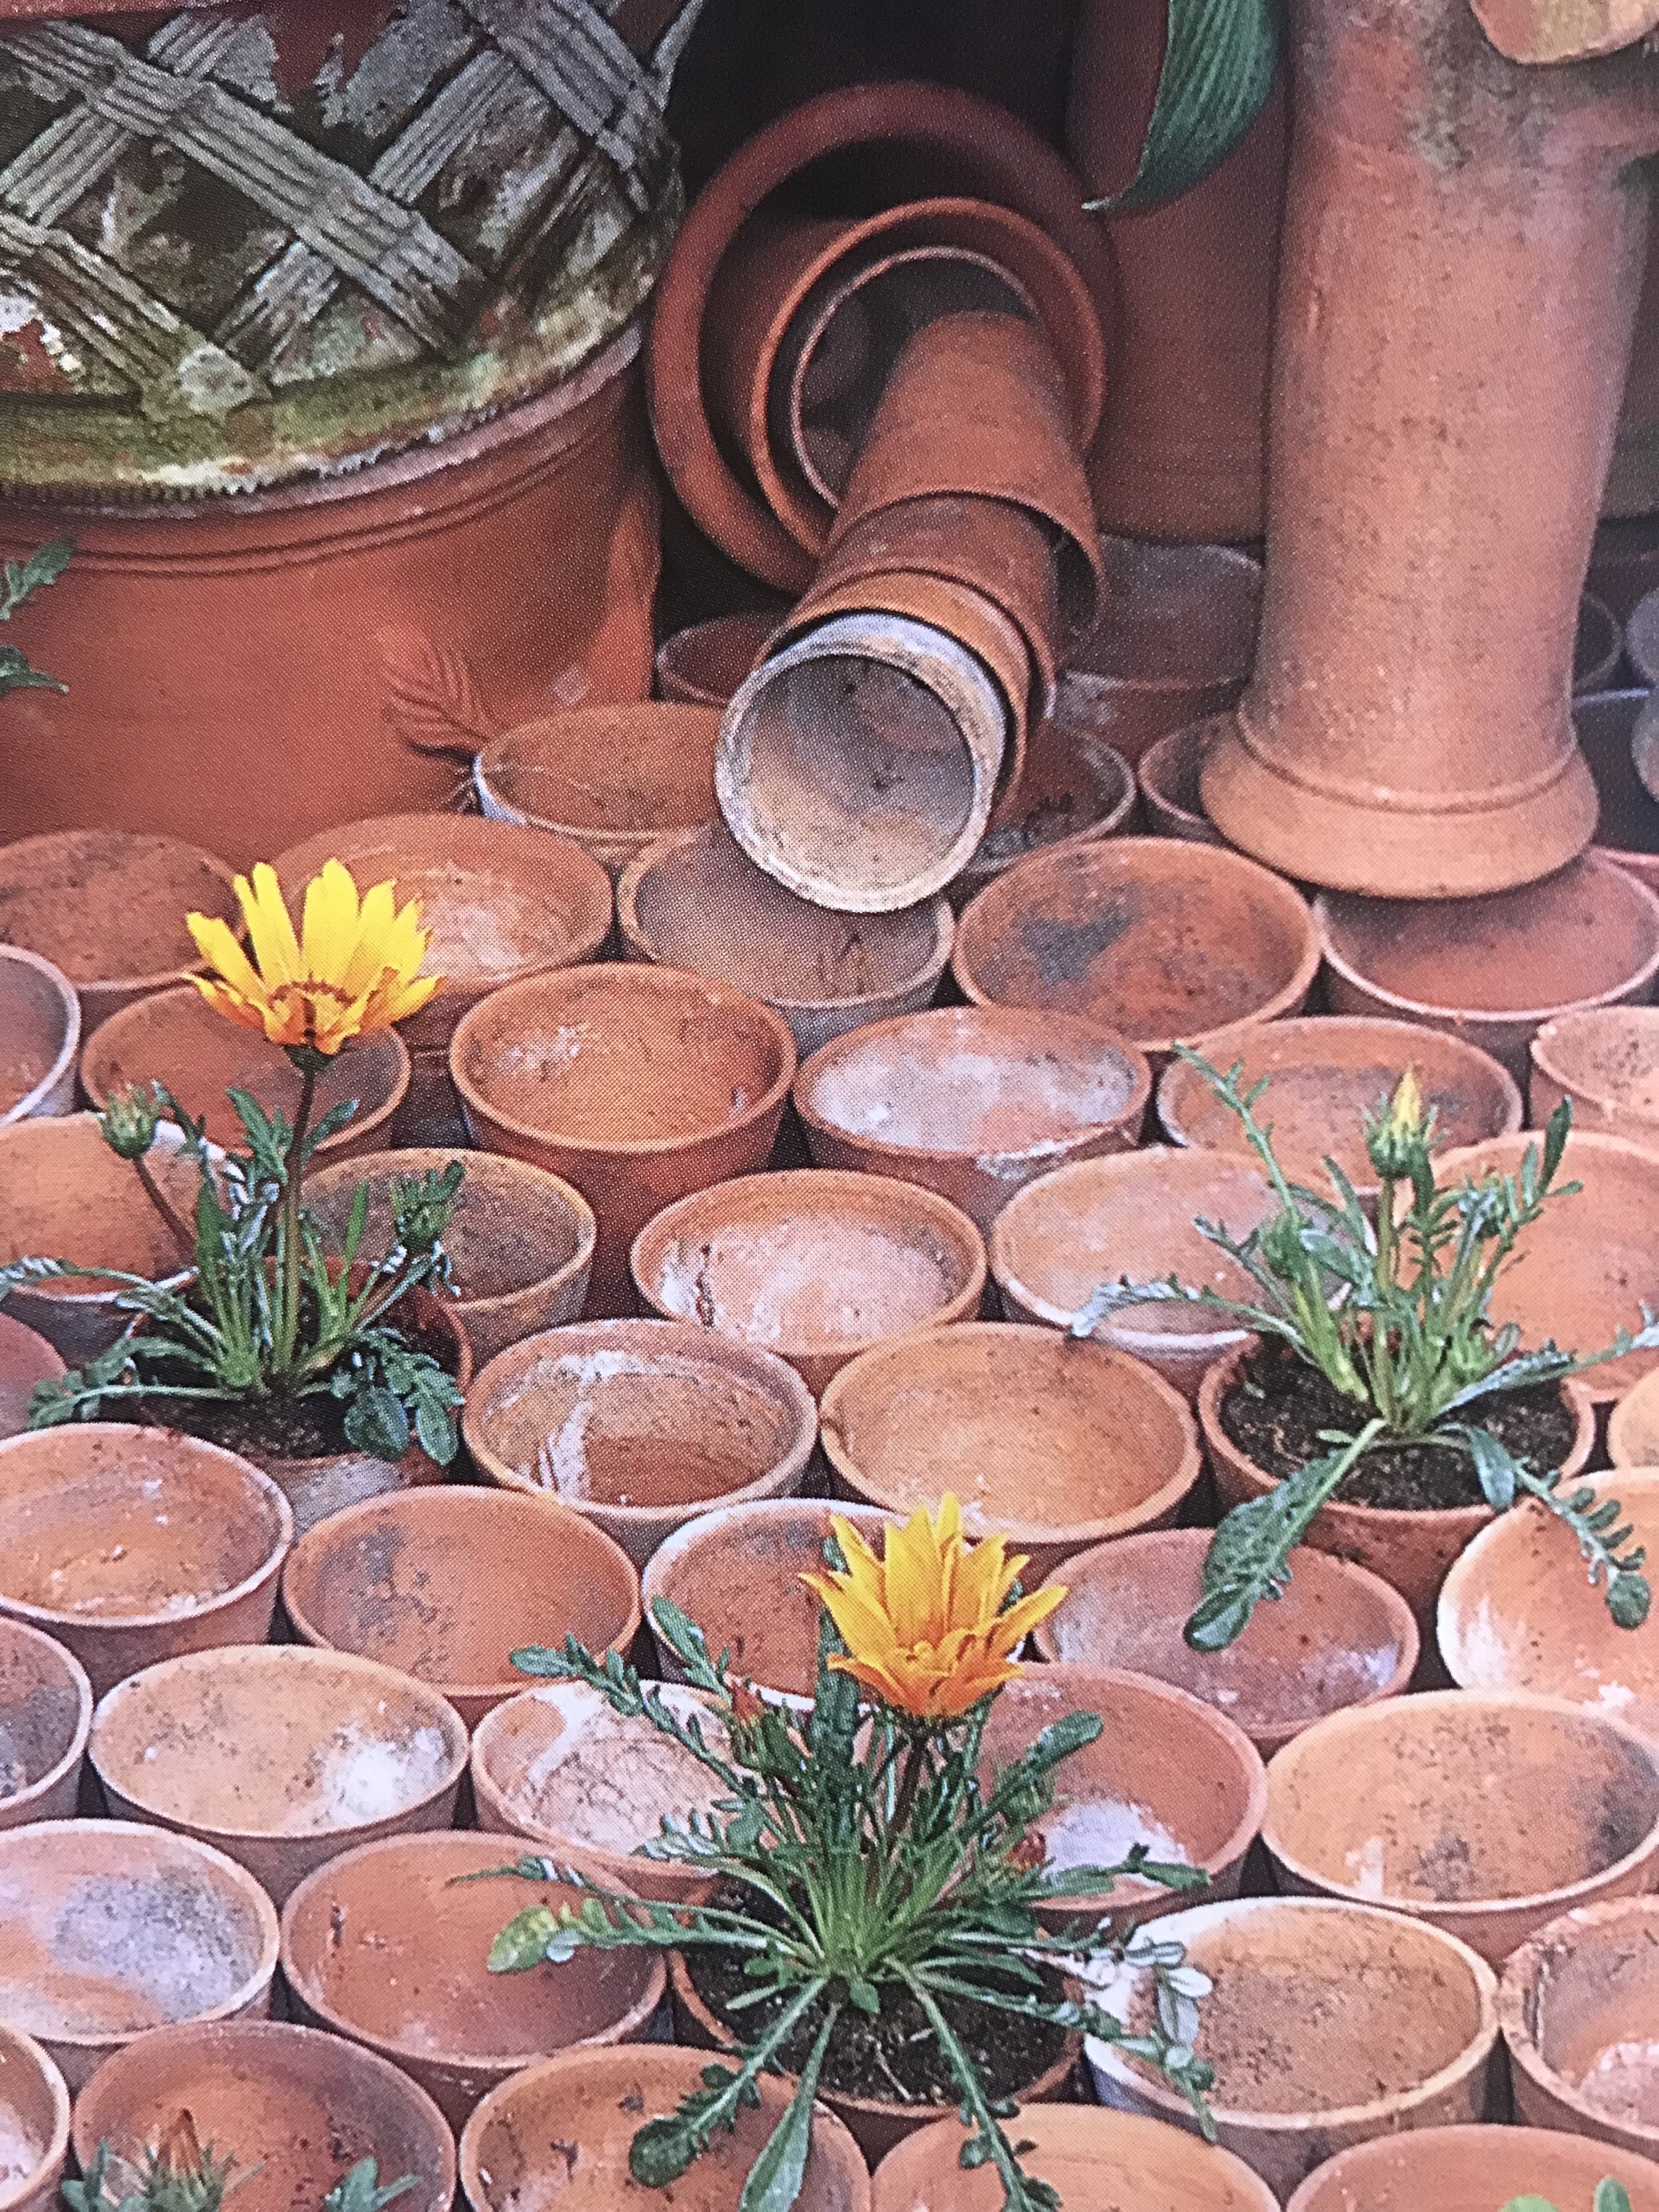 Terracotta pots in one corner